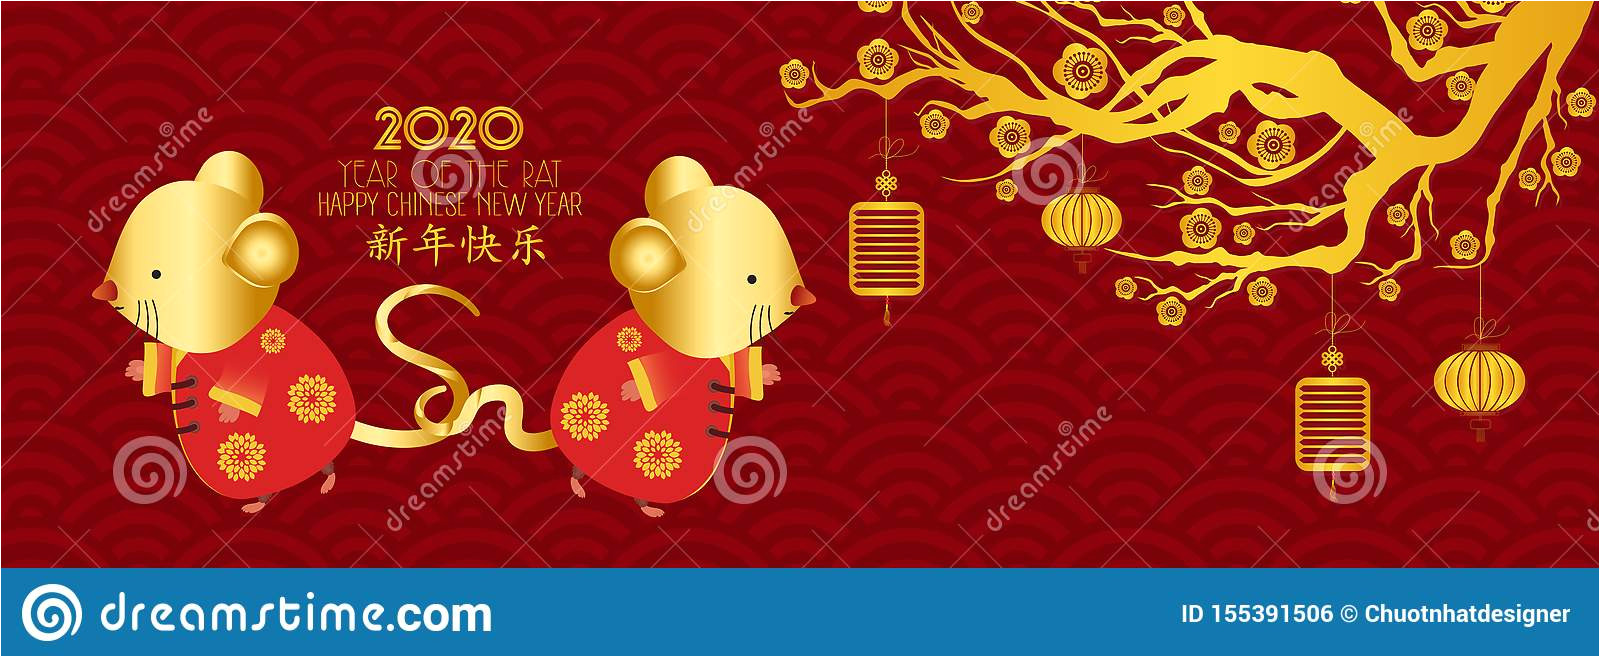 chinese new year rat red gold paper cut character flower asian elements craft style background translation 155391506 jpg